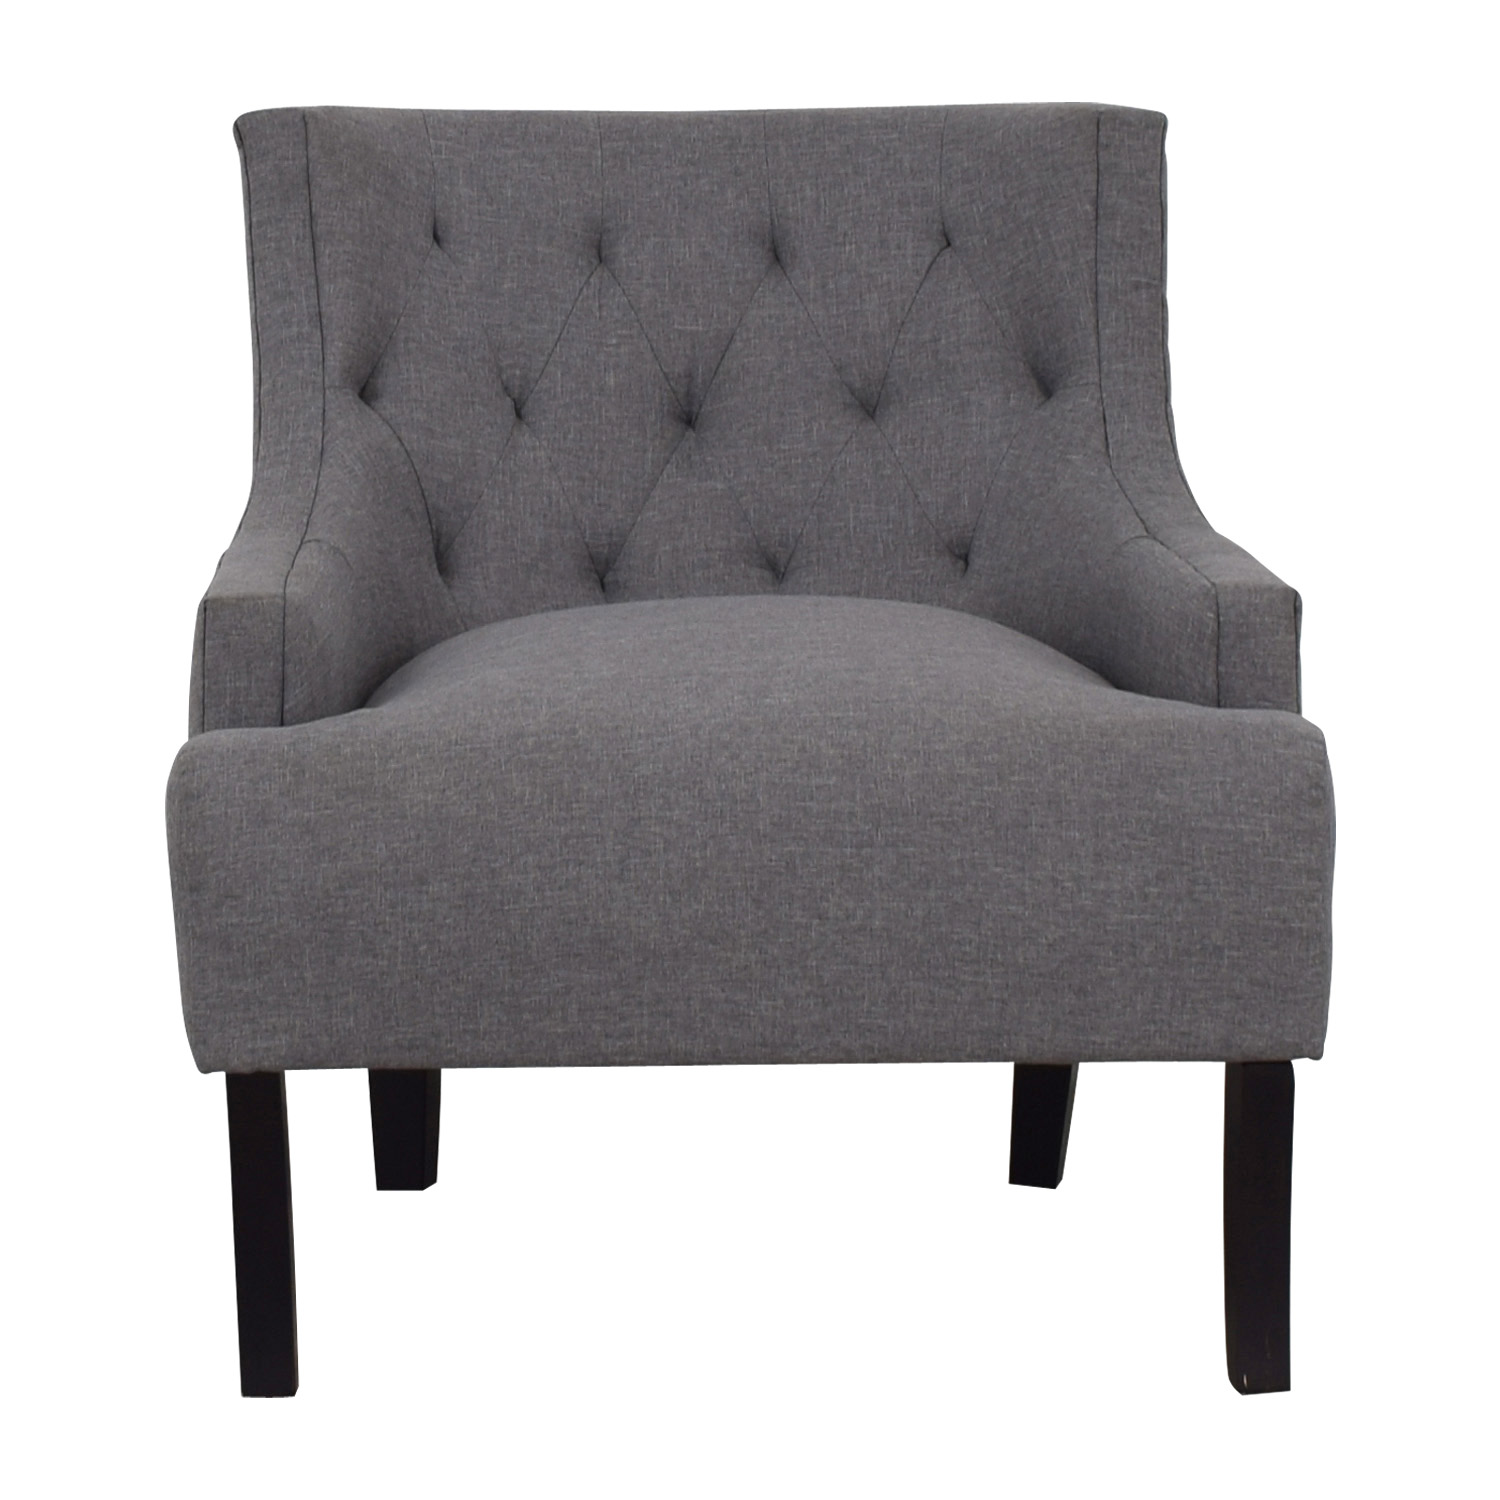 48 Off Hayneedle Hayneedle Tufts Grey Tufted Accent Chair Chairs